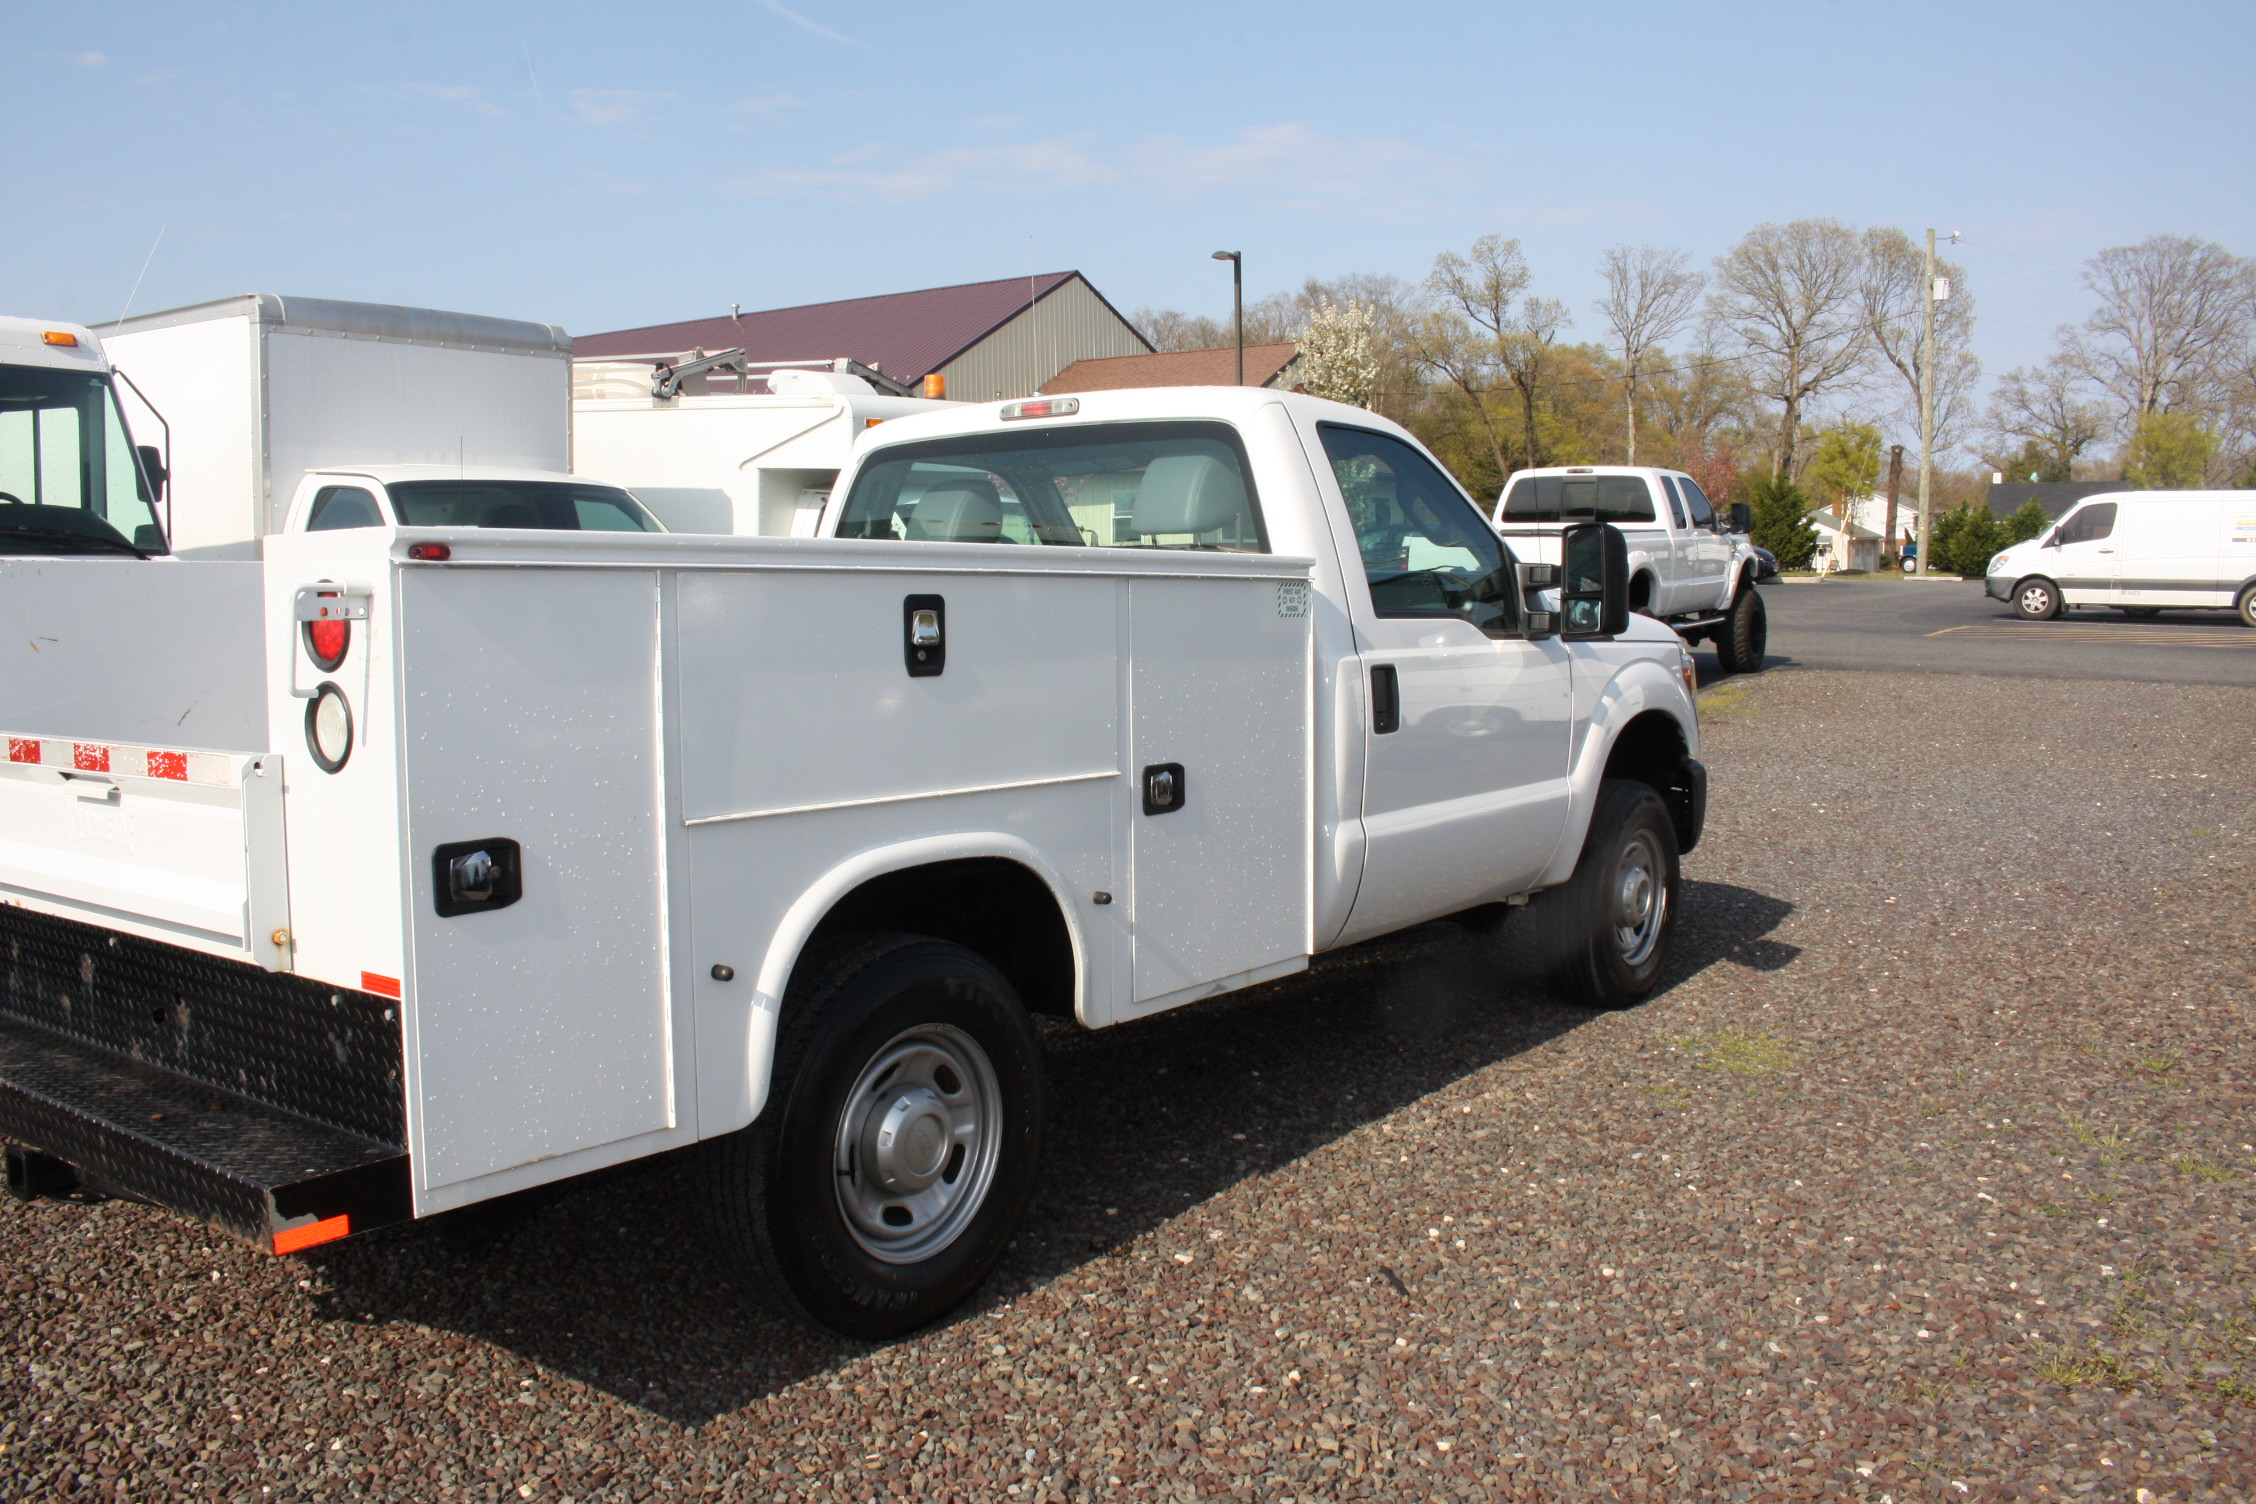 IMG 3581 - 2015 FORD F250 OPEN UTILITY TRUCK